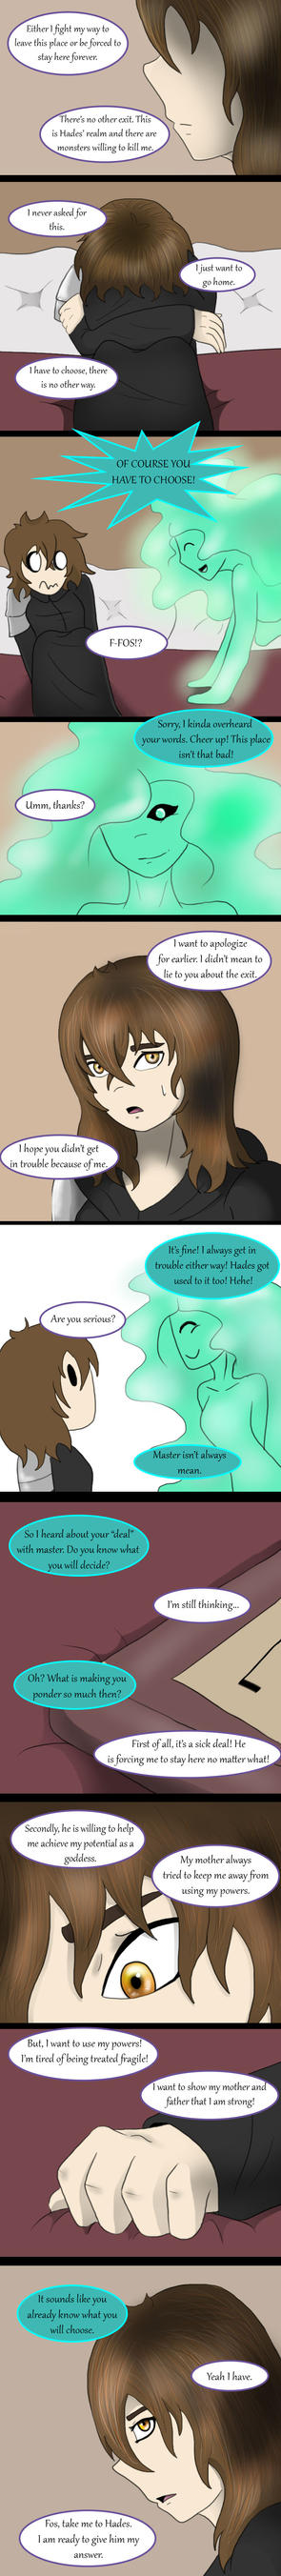 Forbiddentale page 49 by joselyn565